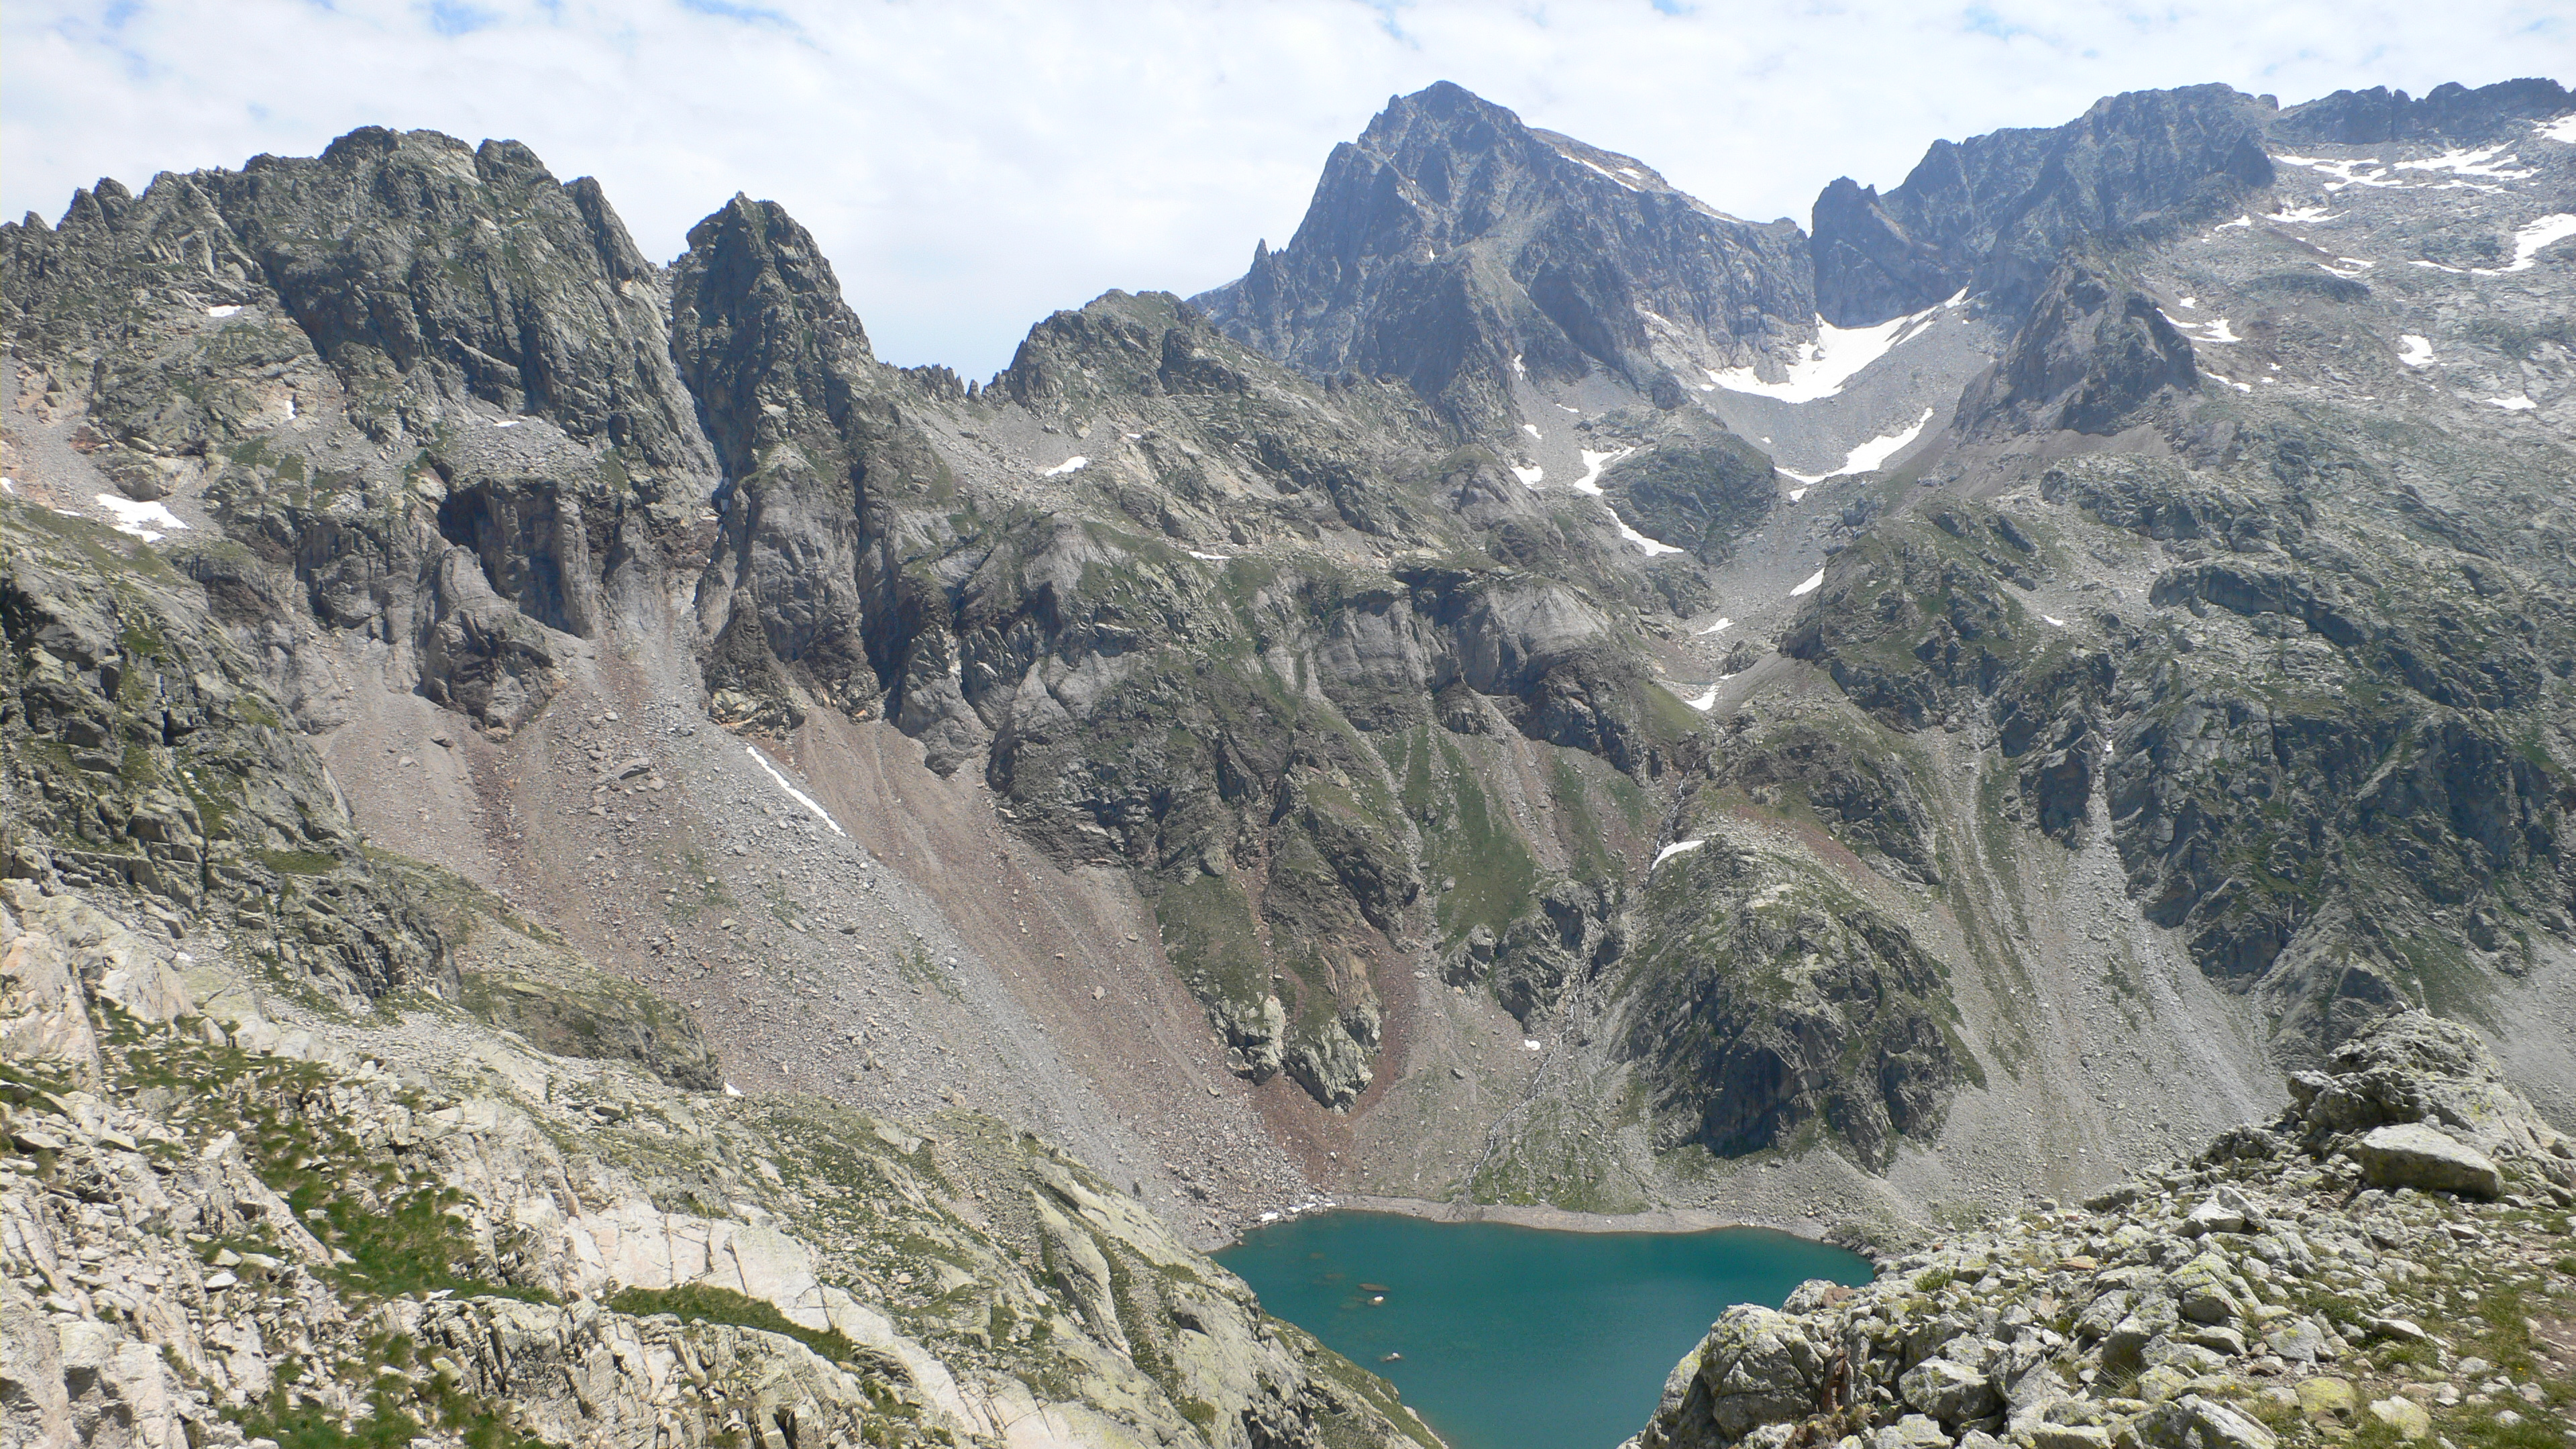 Looking down on the Lacs d'Arriel from the Col du Palas